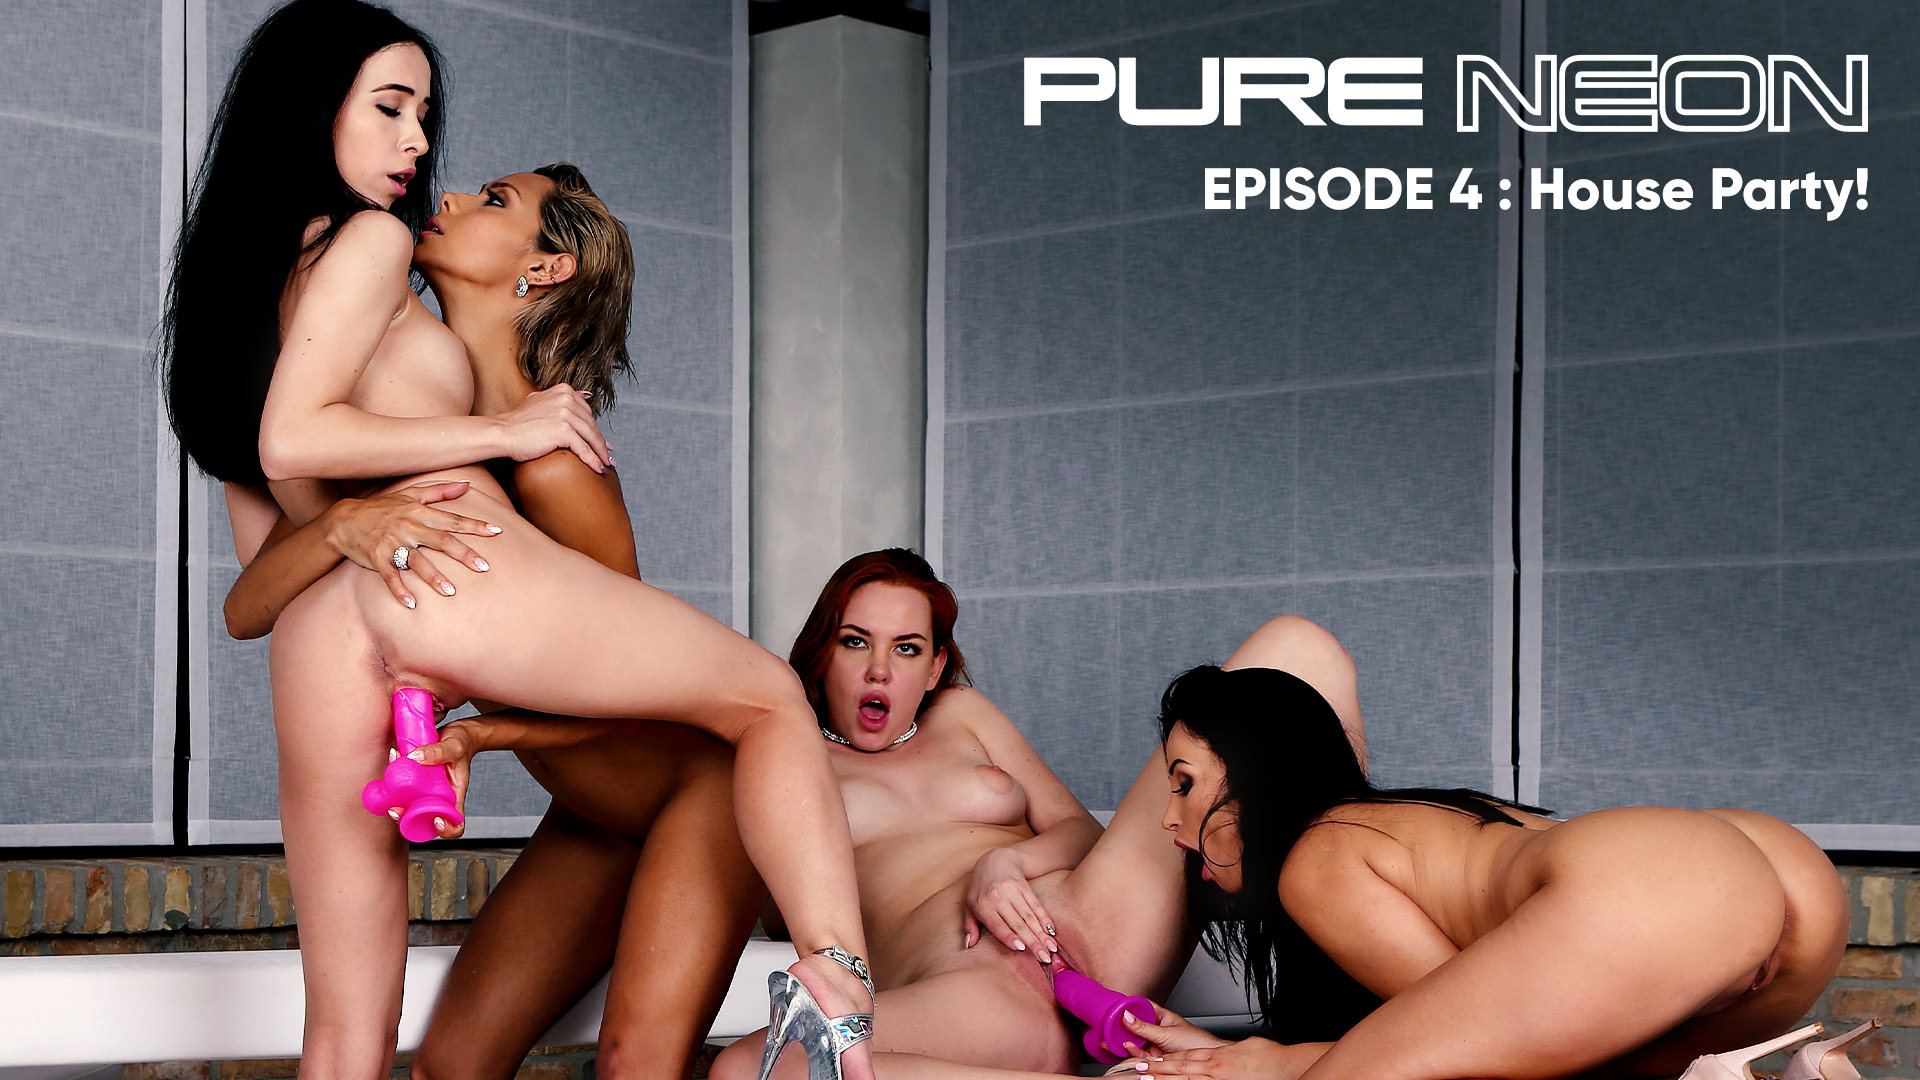 Pure Neon: House Party!